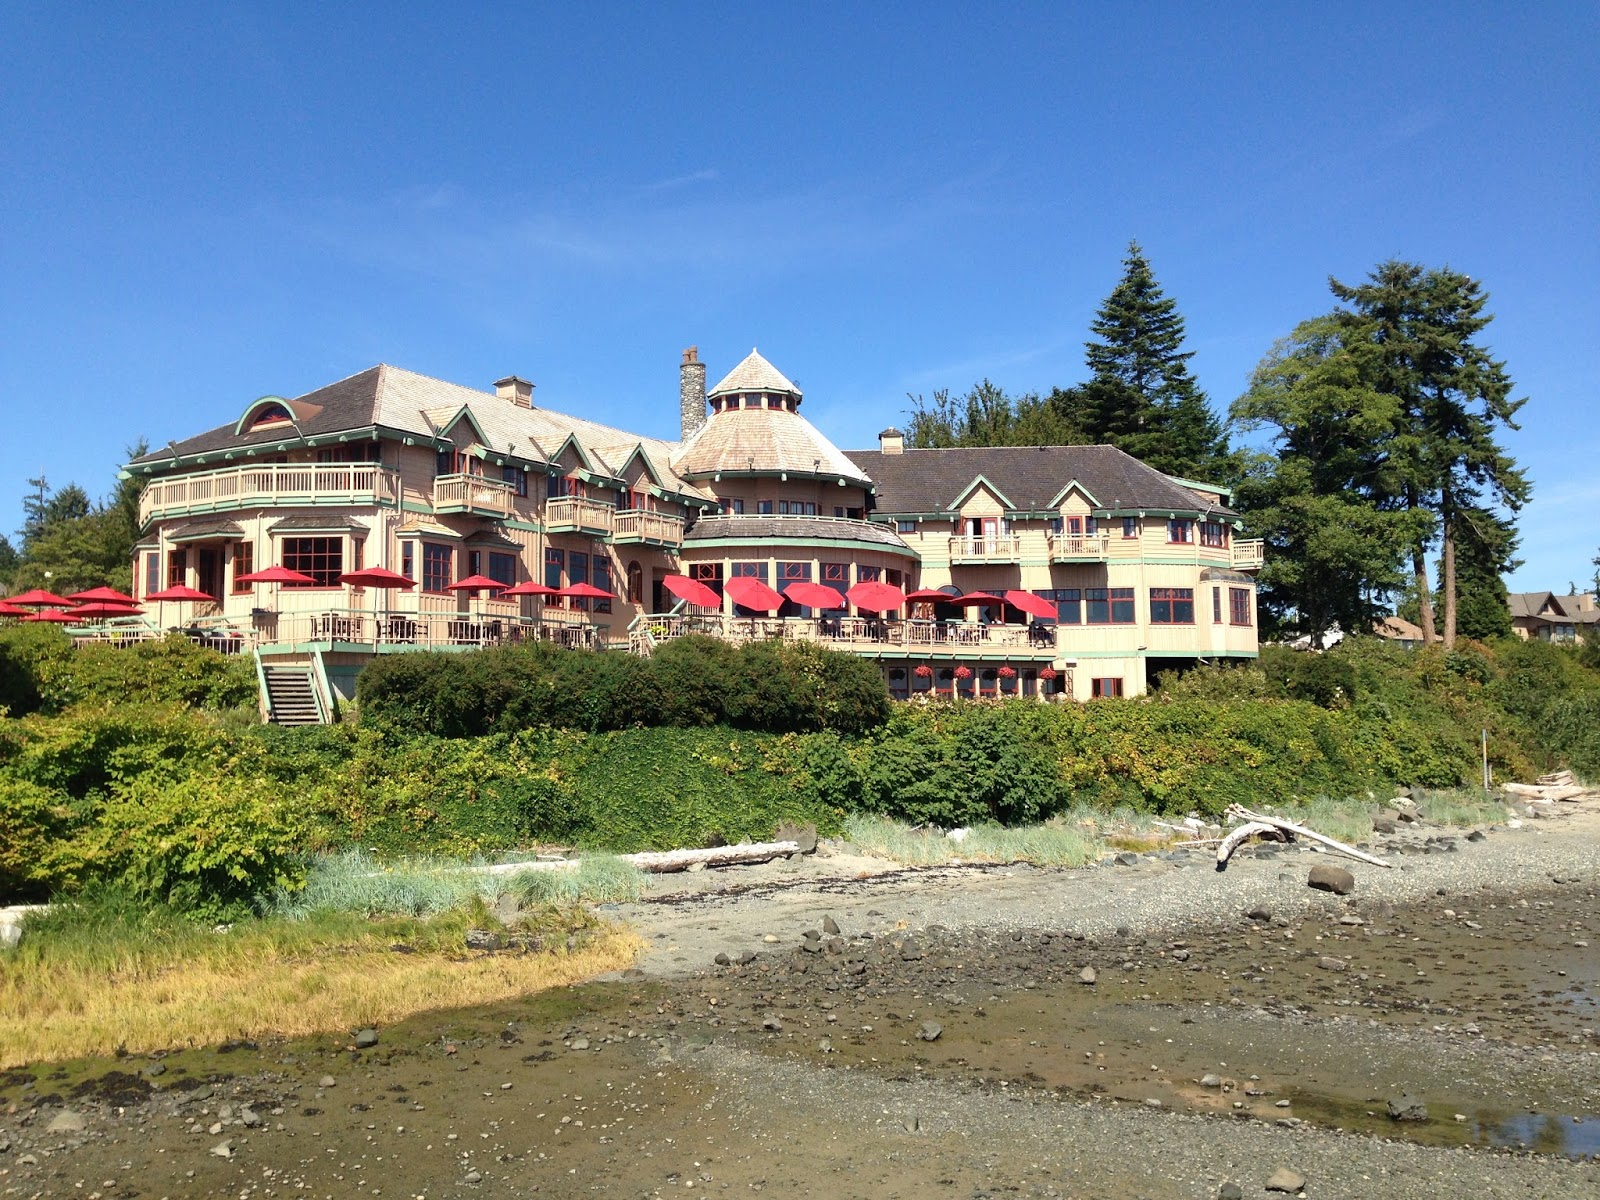 Painter's Lodge In Campbell River, Bc